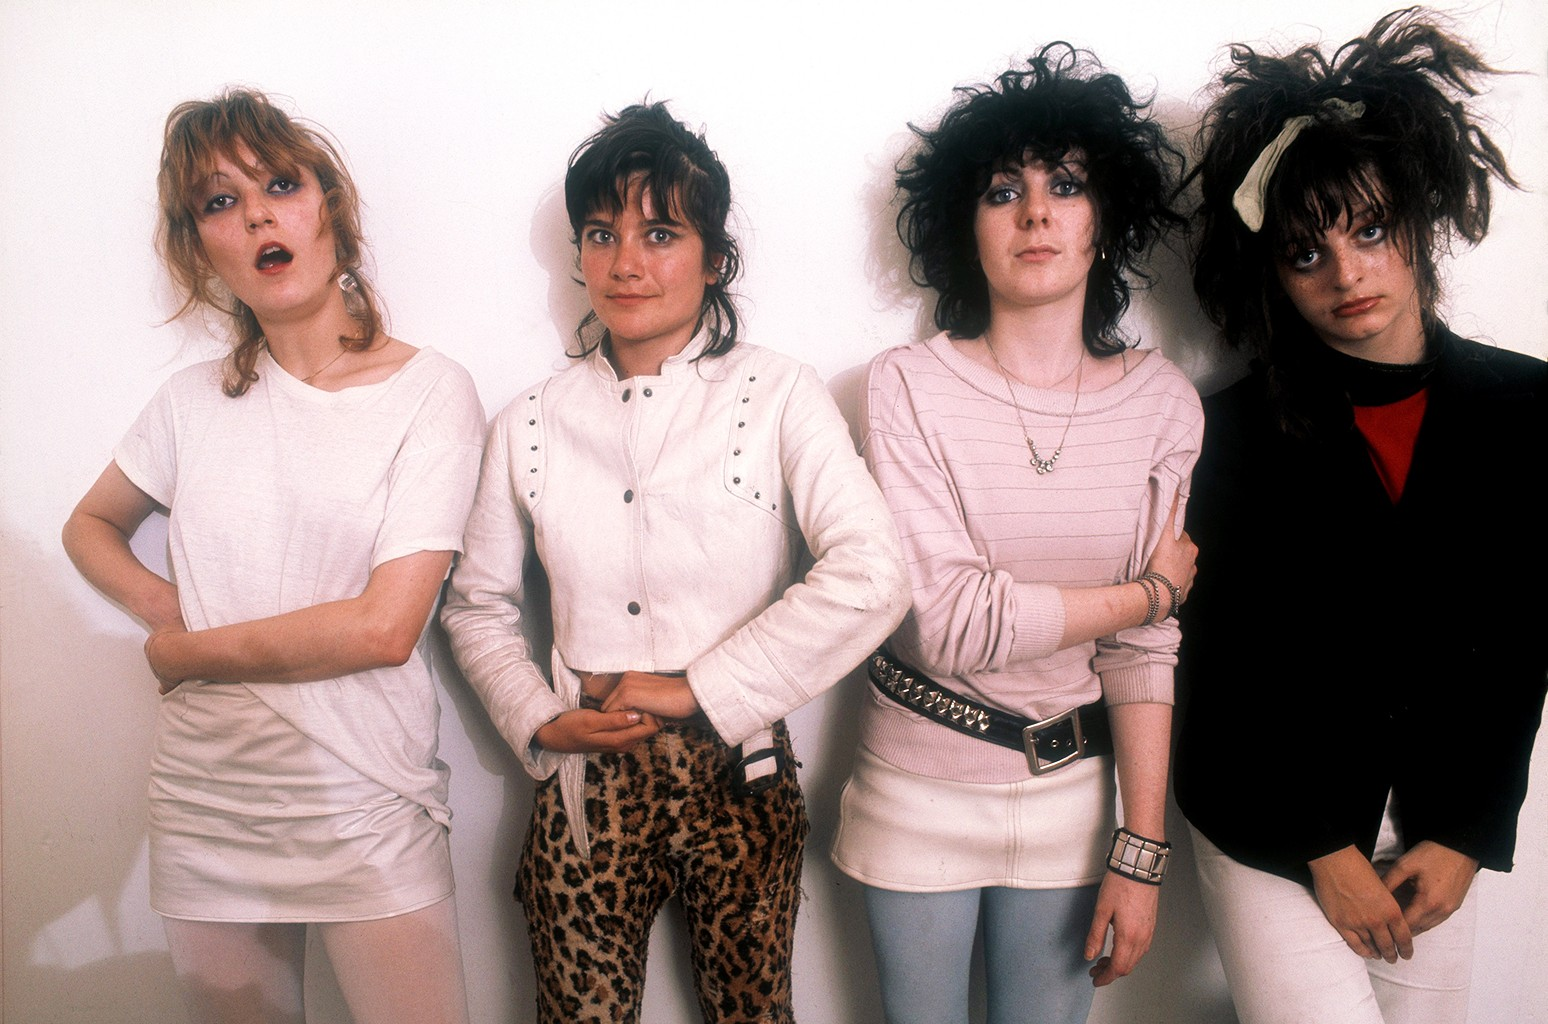 Give Me Five...Featuring The Slits